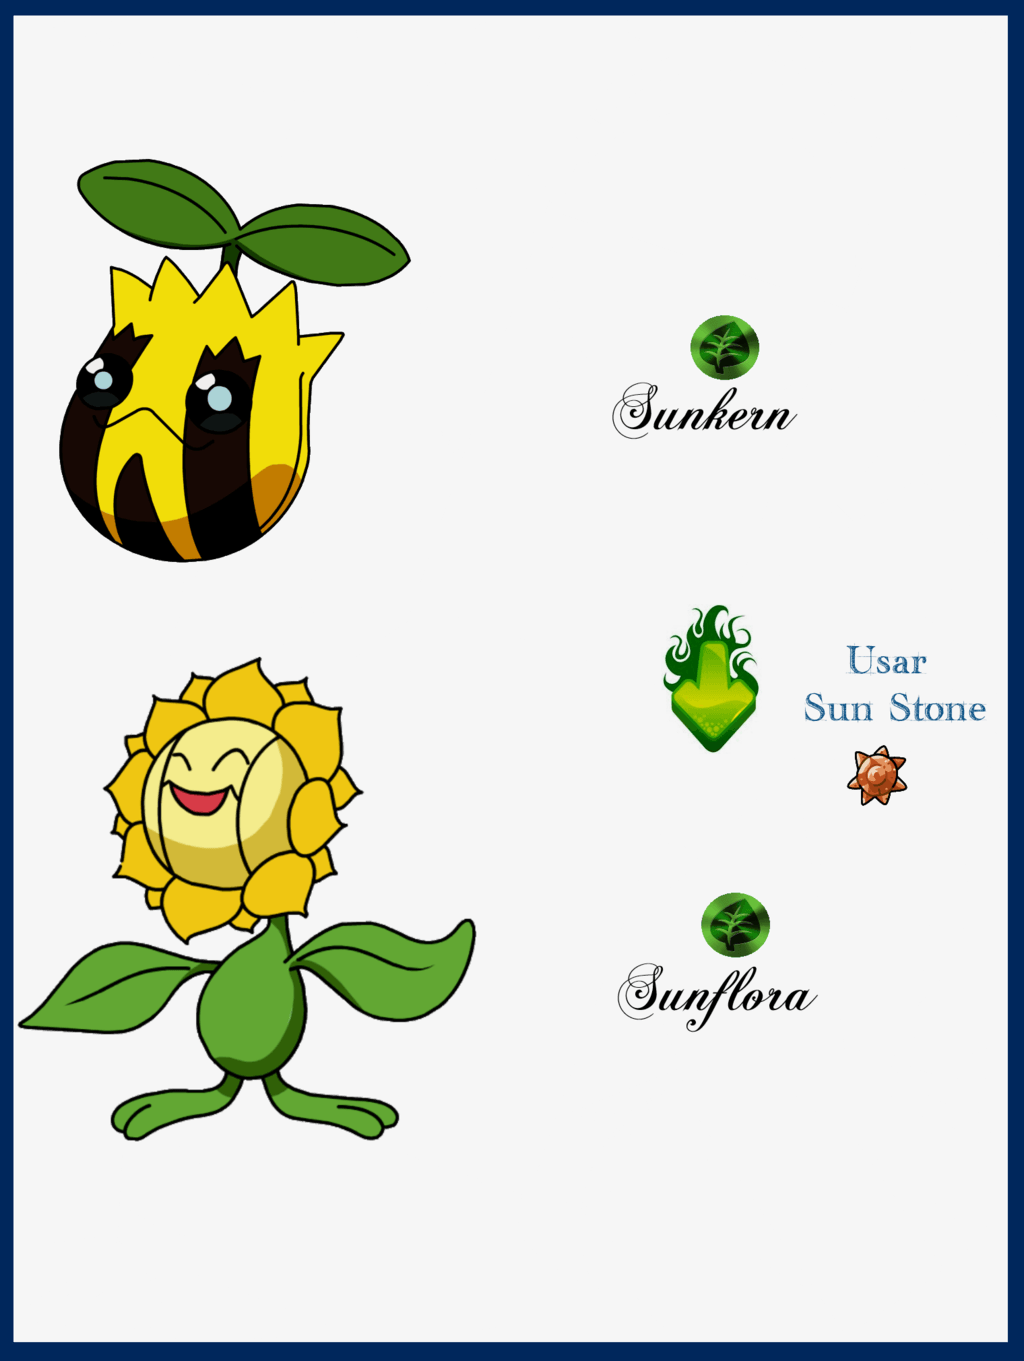 089 Sunkern Evoluciones by Maxconnery on DeviantArt